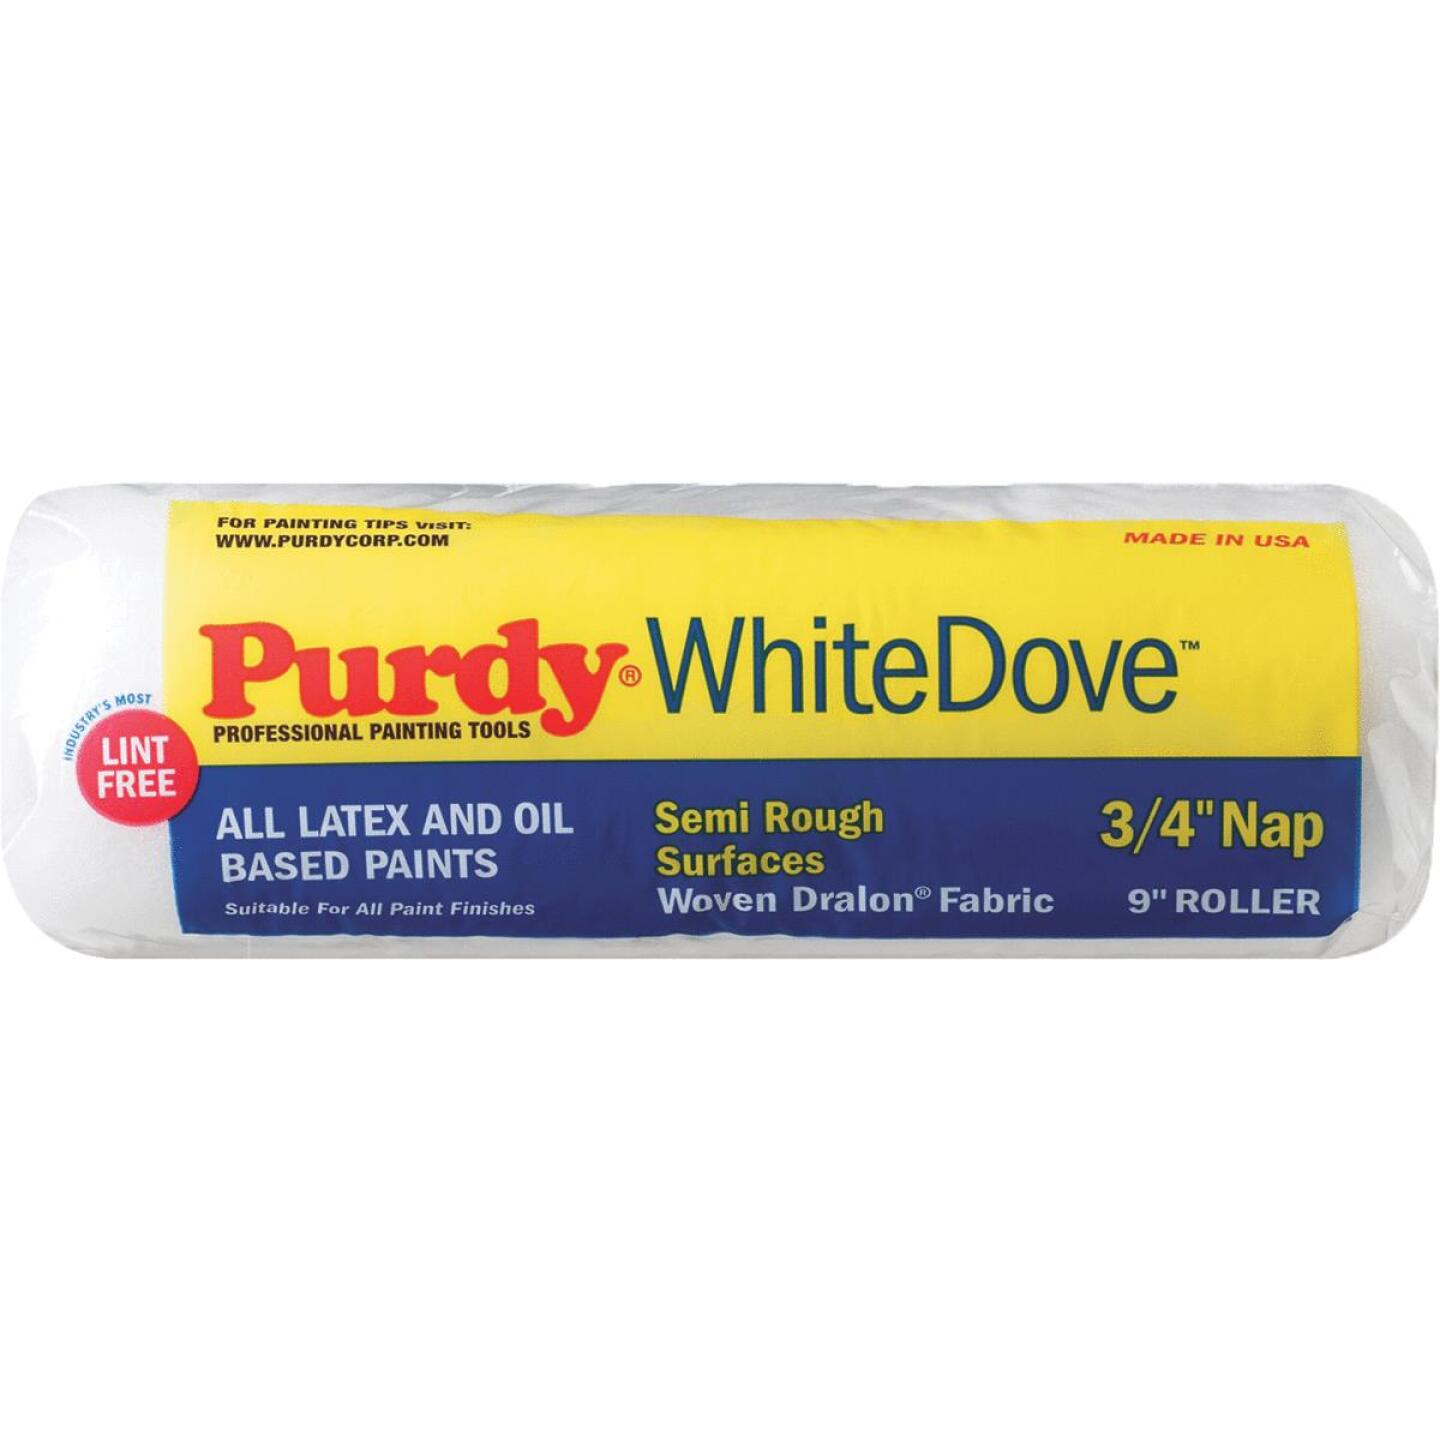 Purdy White Dove 9 In. x 3/4 In. Woven Fabric Roller Cover Image 1